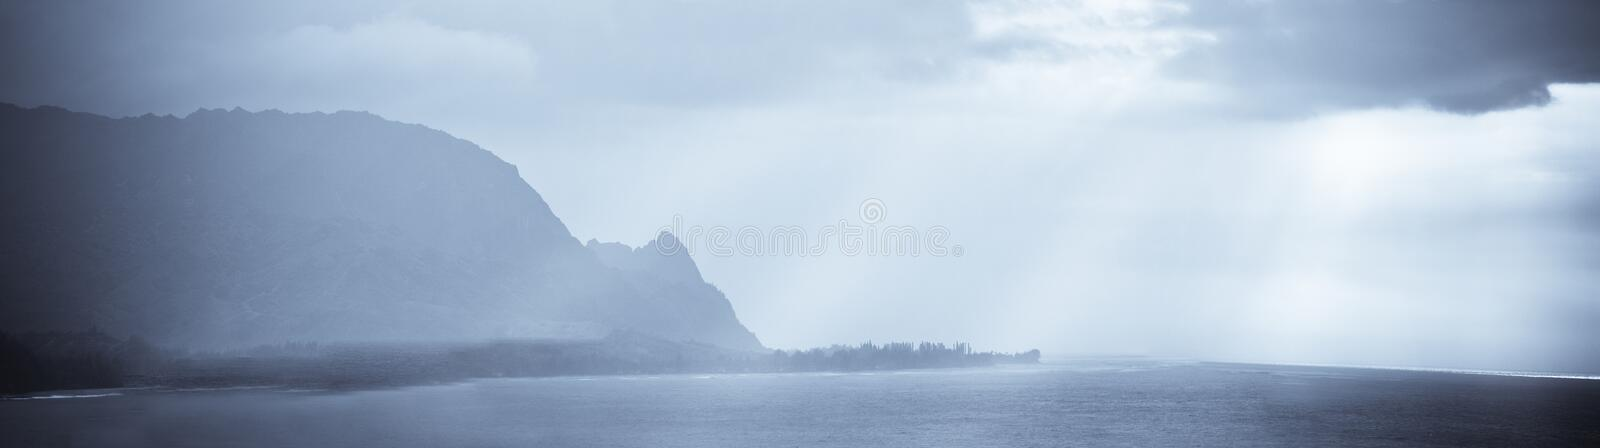 Landscape of Hawaii Islands stock photography